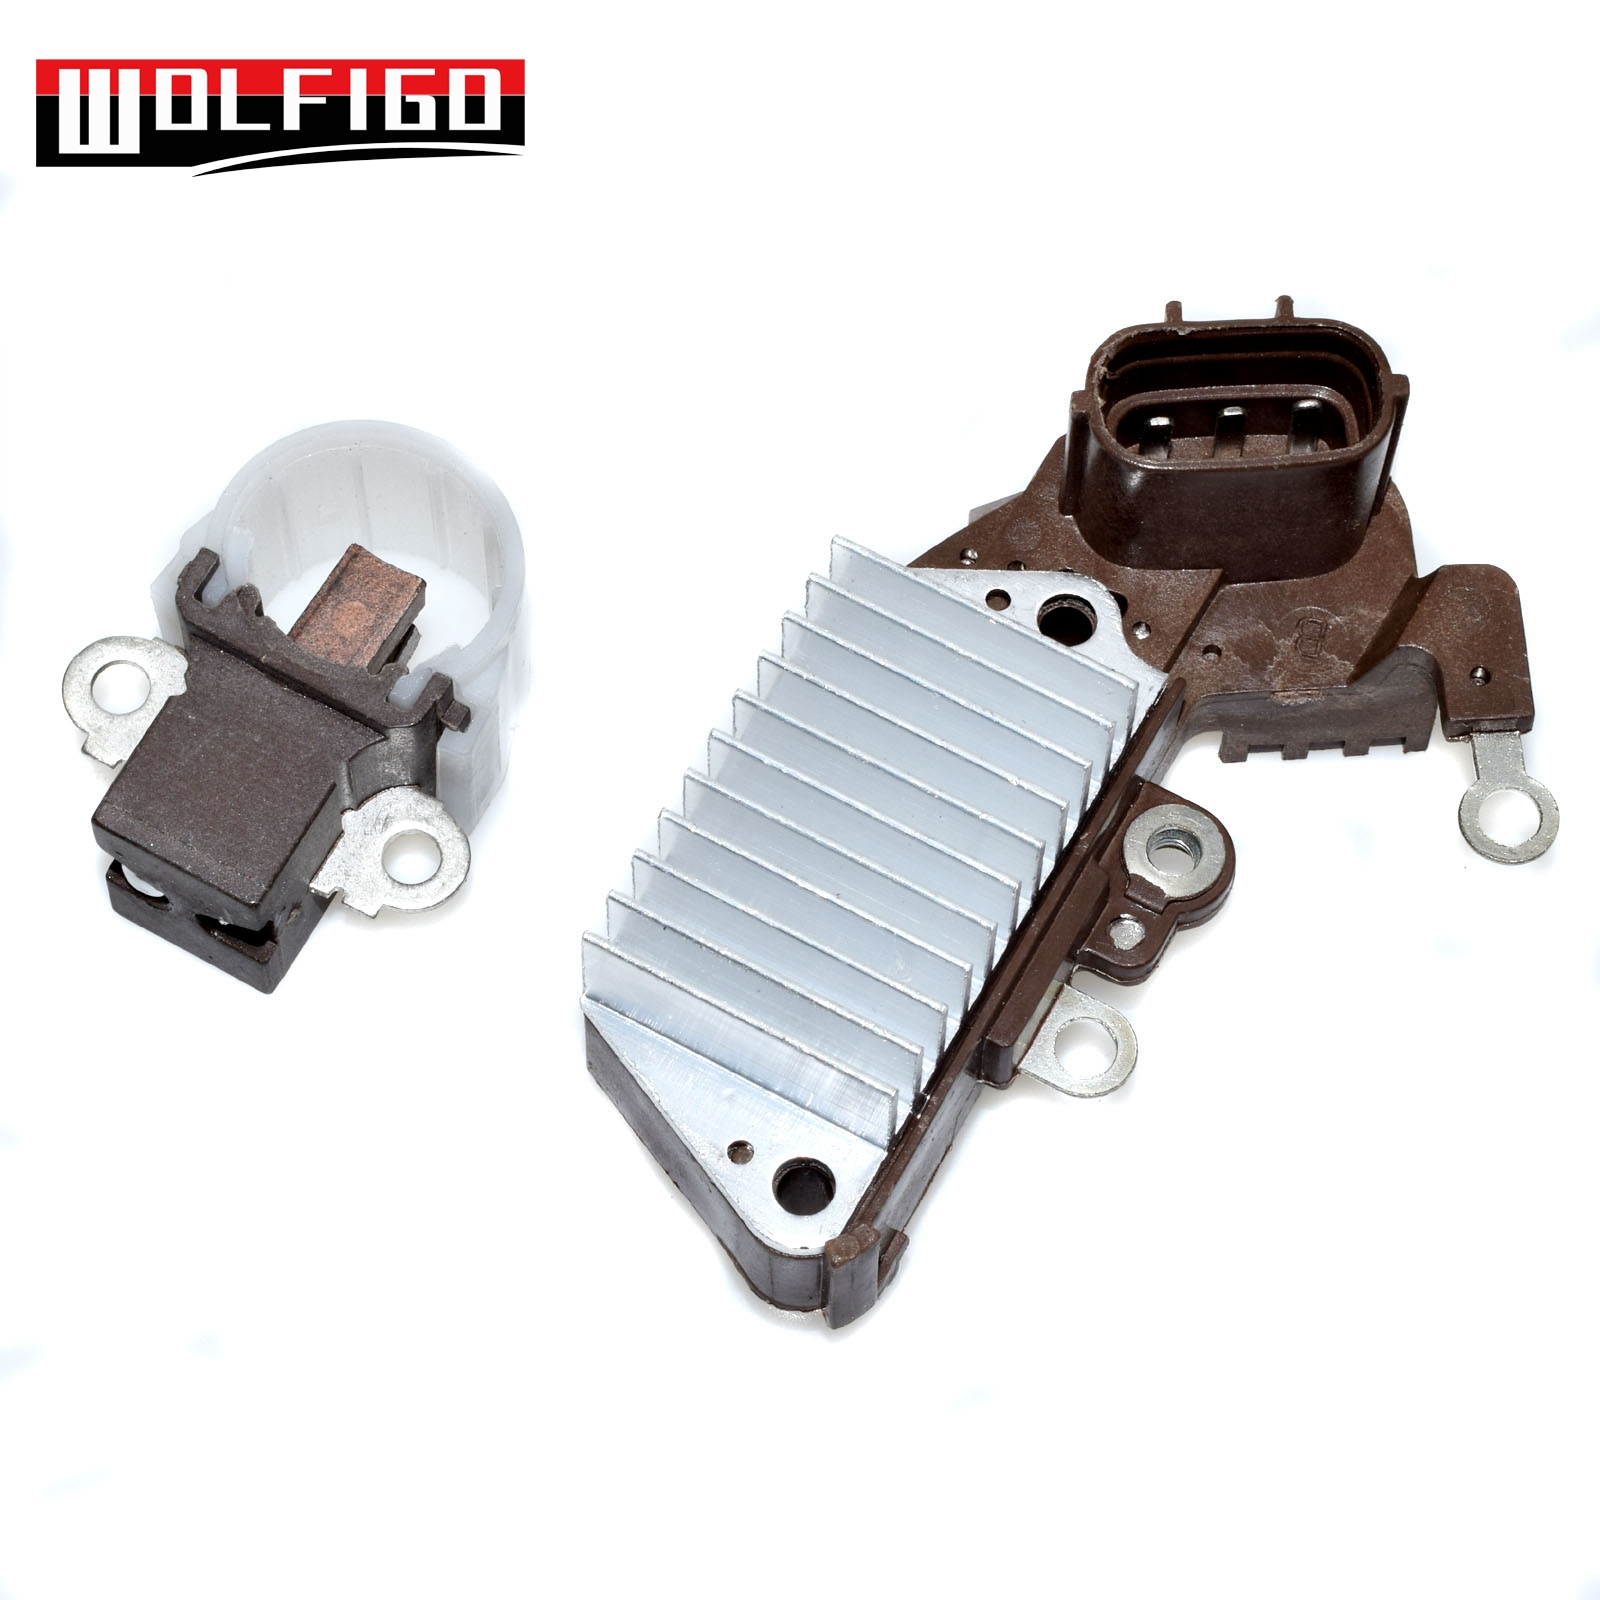 WOLFIGO Voltage Regulator BRUSH HOLDER for <font><b>TOYOTA</b></font> <font><b>CAMRY</b></font> <font><b>2.2L</b></font> 70A CELICA <font><b>2.2L</b></font> 70A MR2 1260001580 NEW image